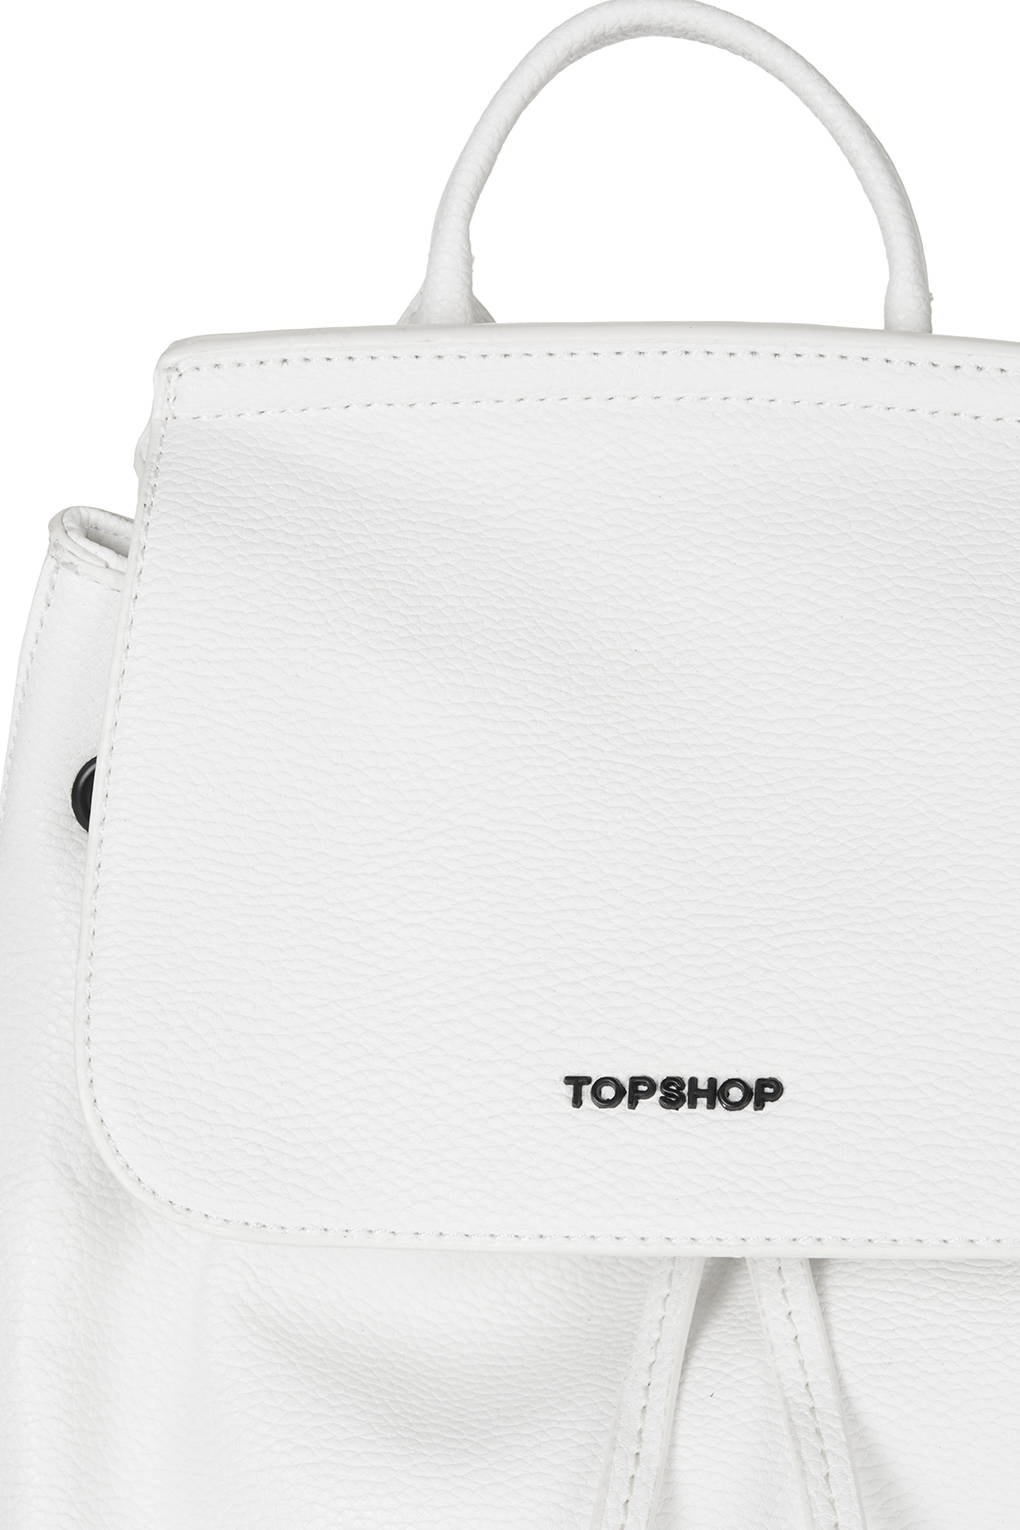 d795dc118a90 Lyst - TOPSHOP Mini Textured Backpack in White